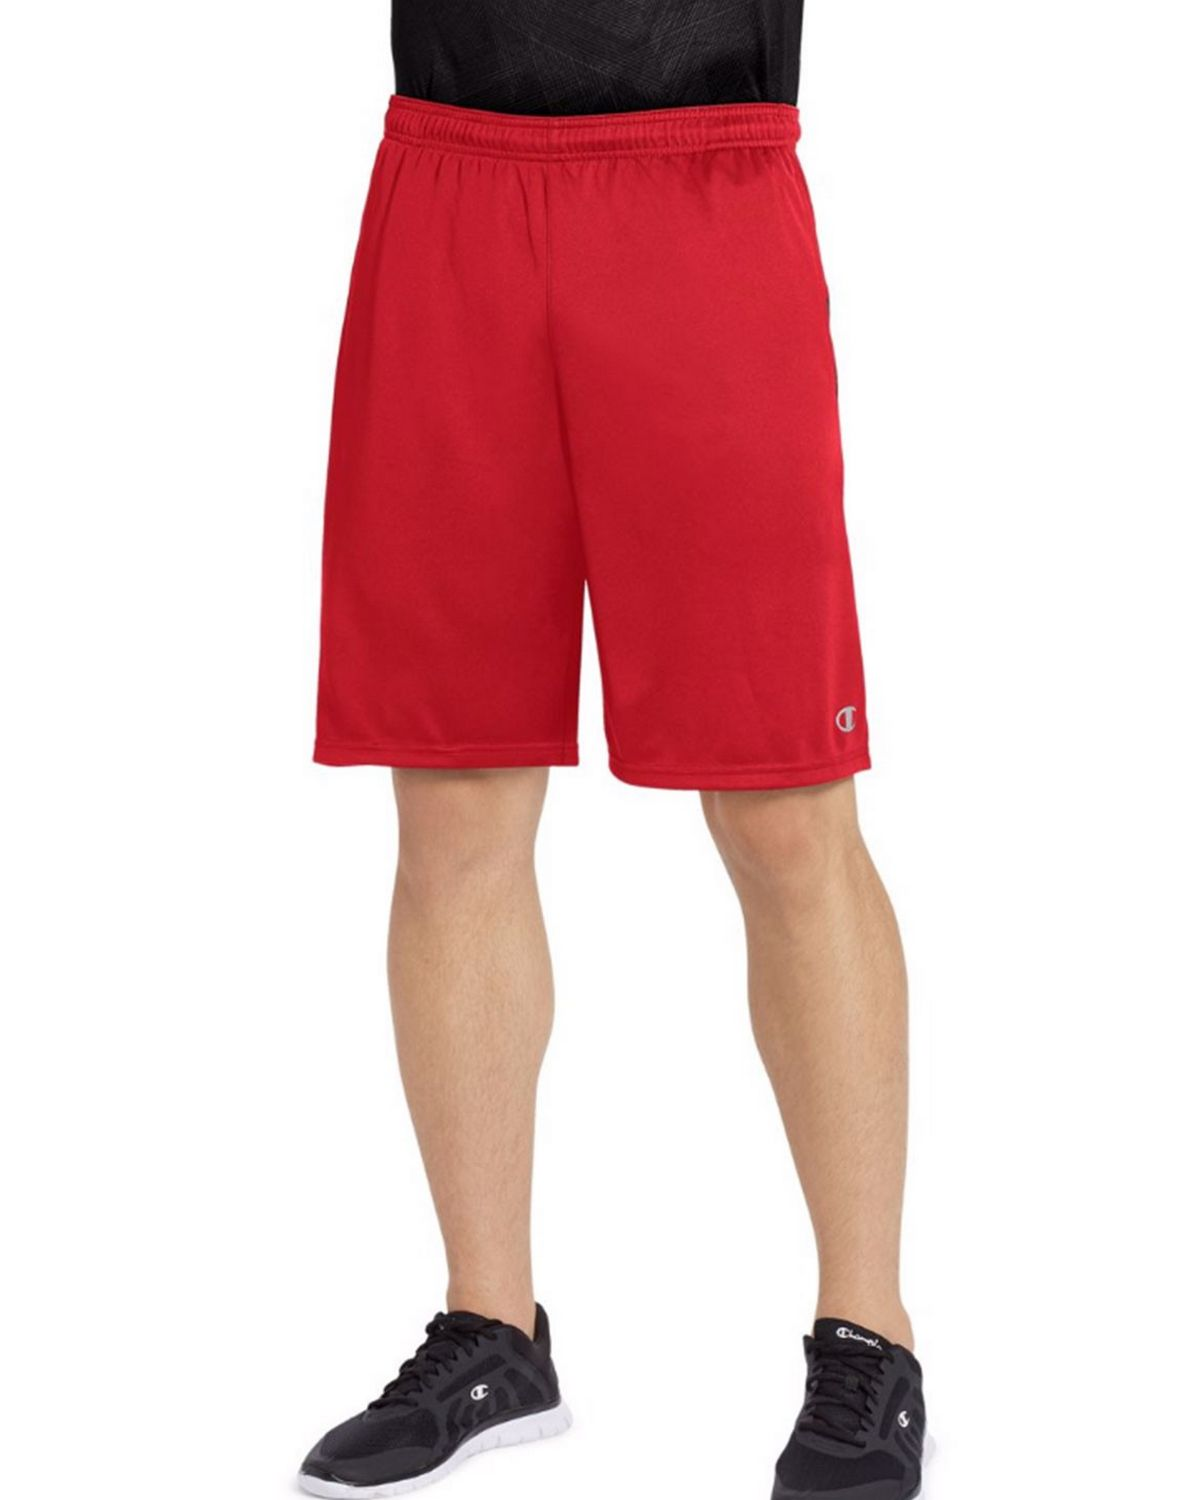 Champion 88125 Vapor Mens Shorts - Scarlet/Black - S 88125